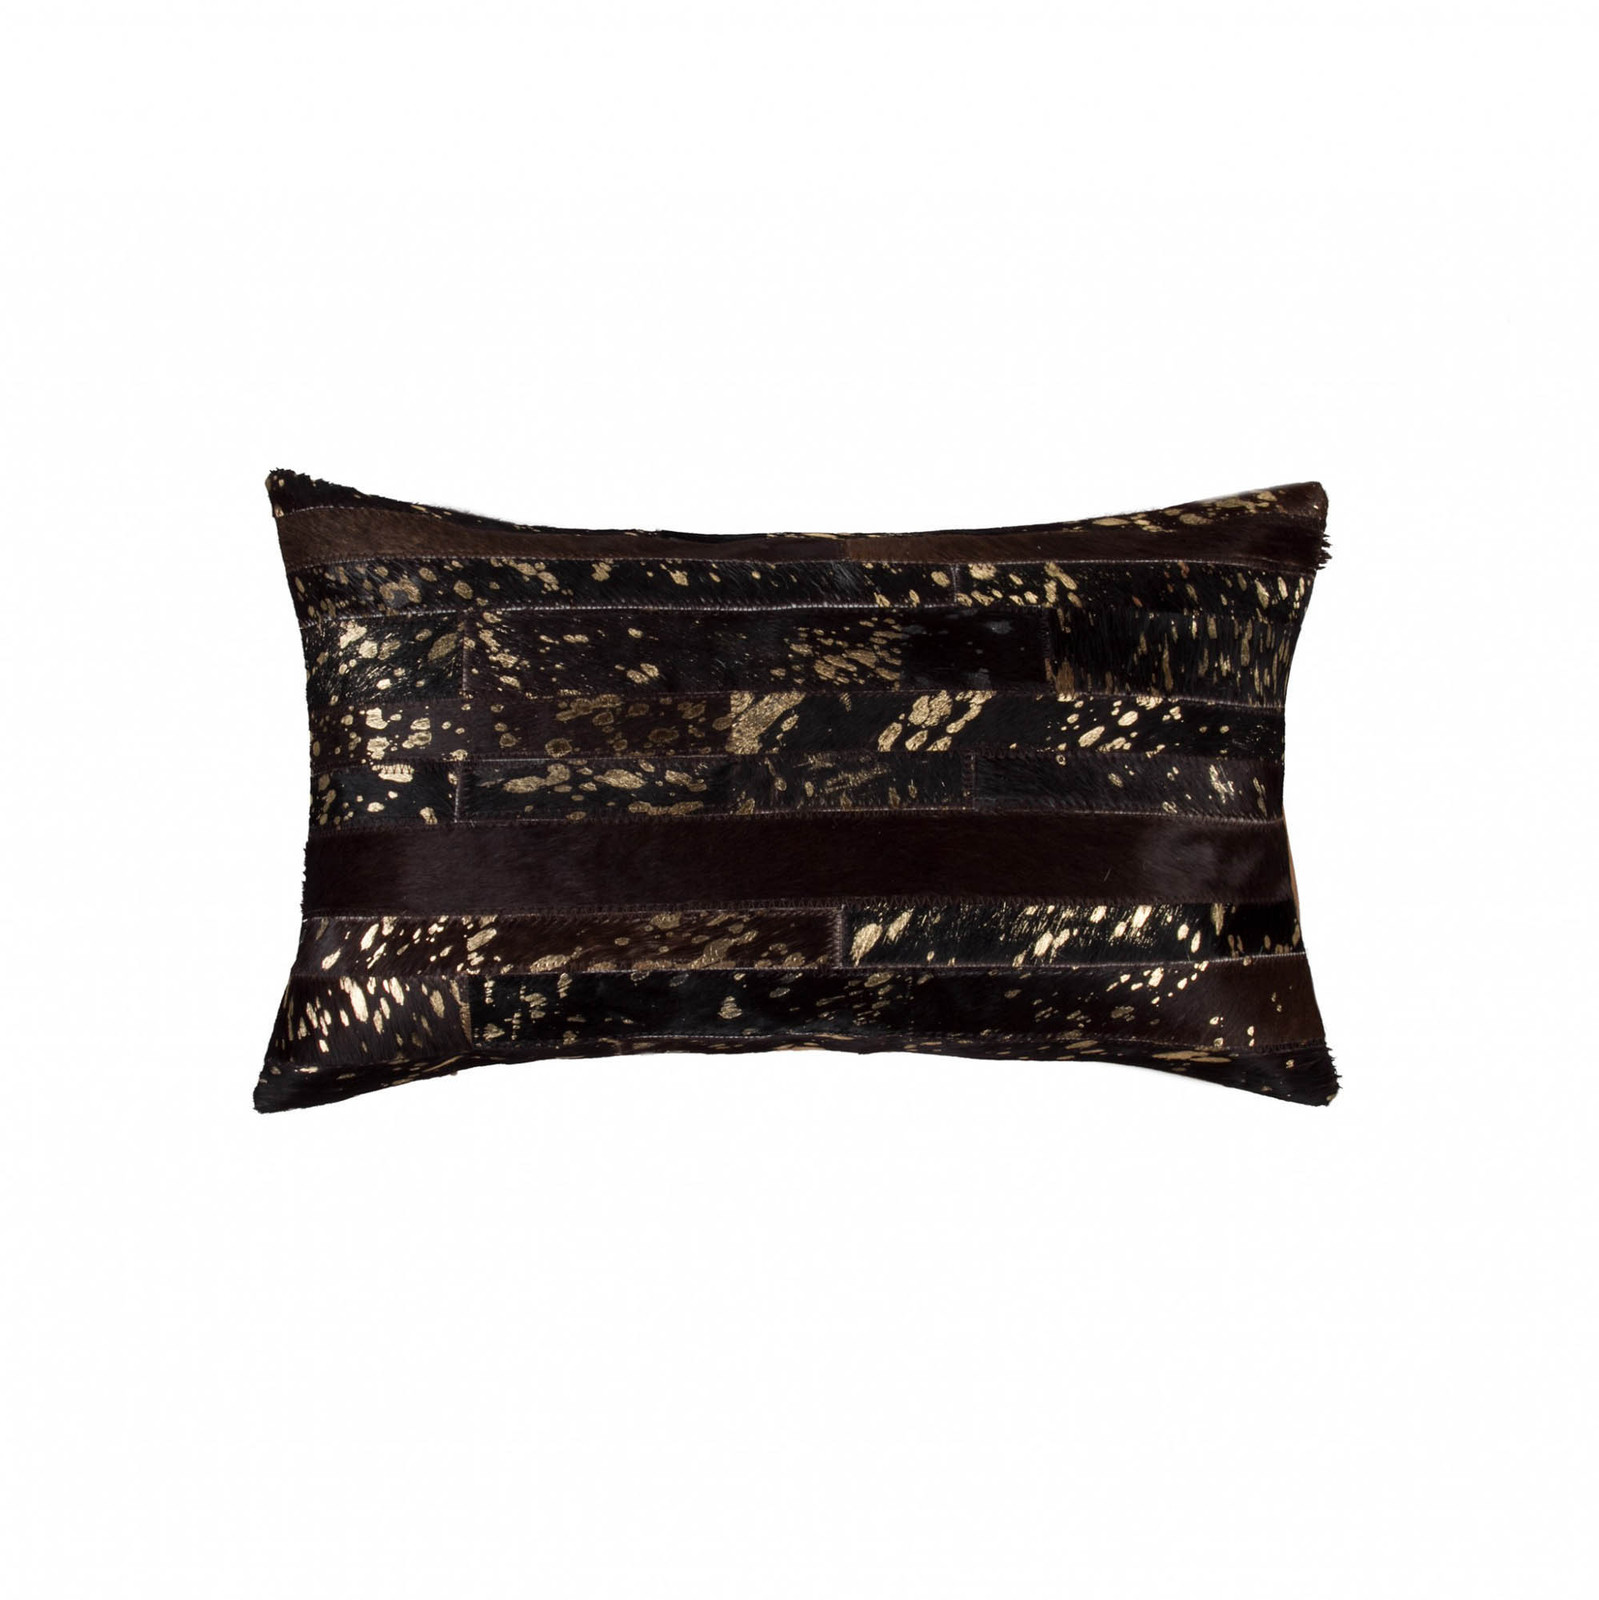 """HomeRoots Decor 12"""" X 20"""" X 5"""" Cowhide Throw Pillow -  Chocolate and Gold - $61.92"""